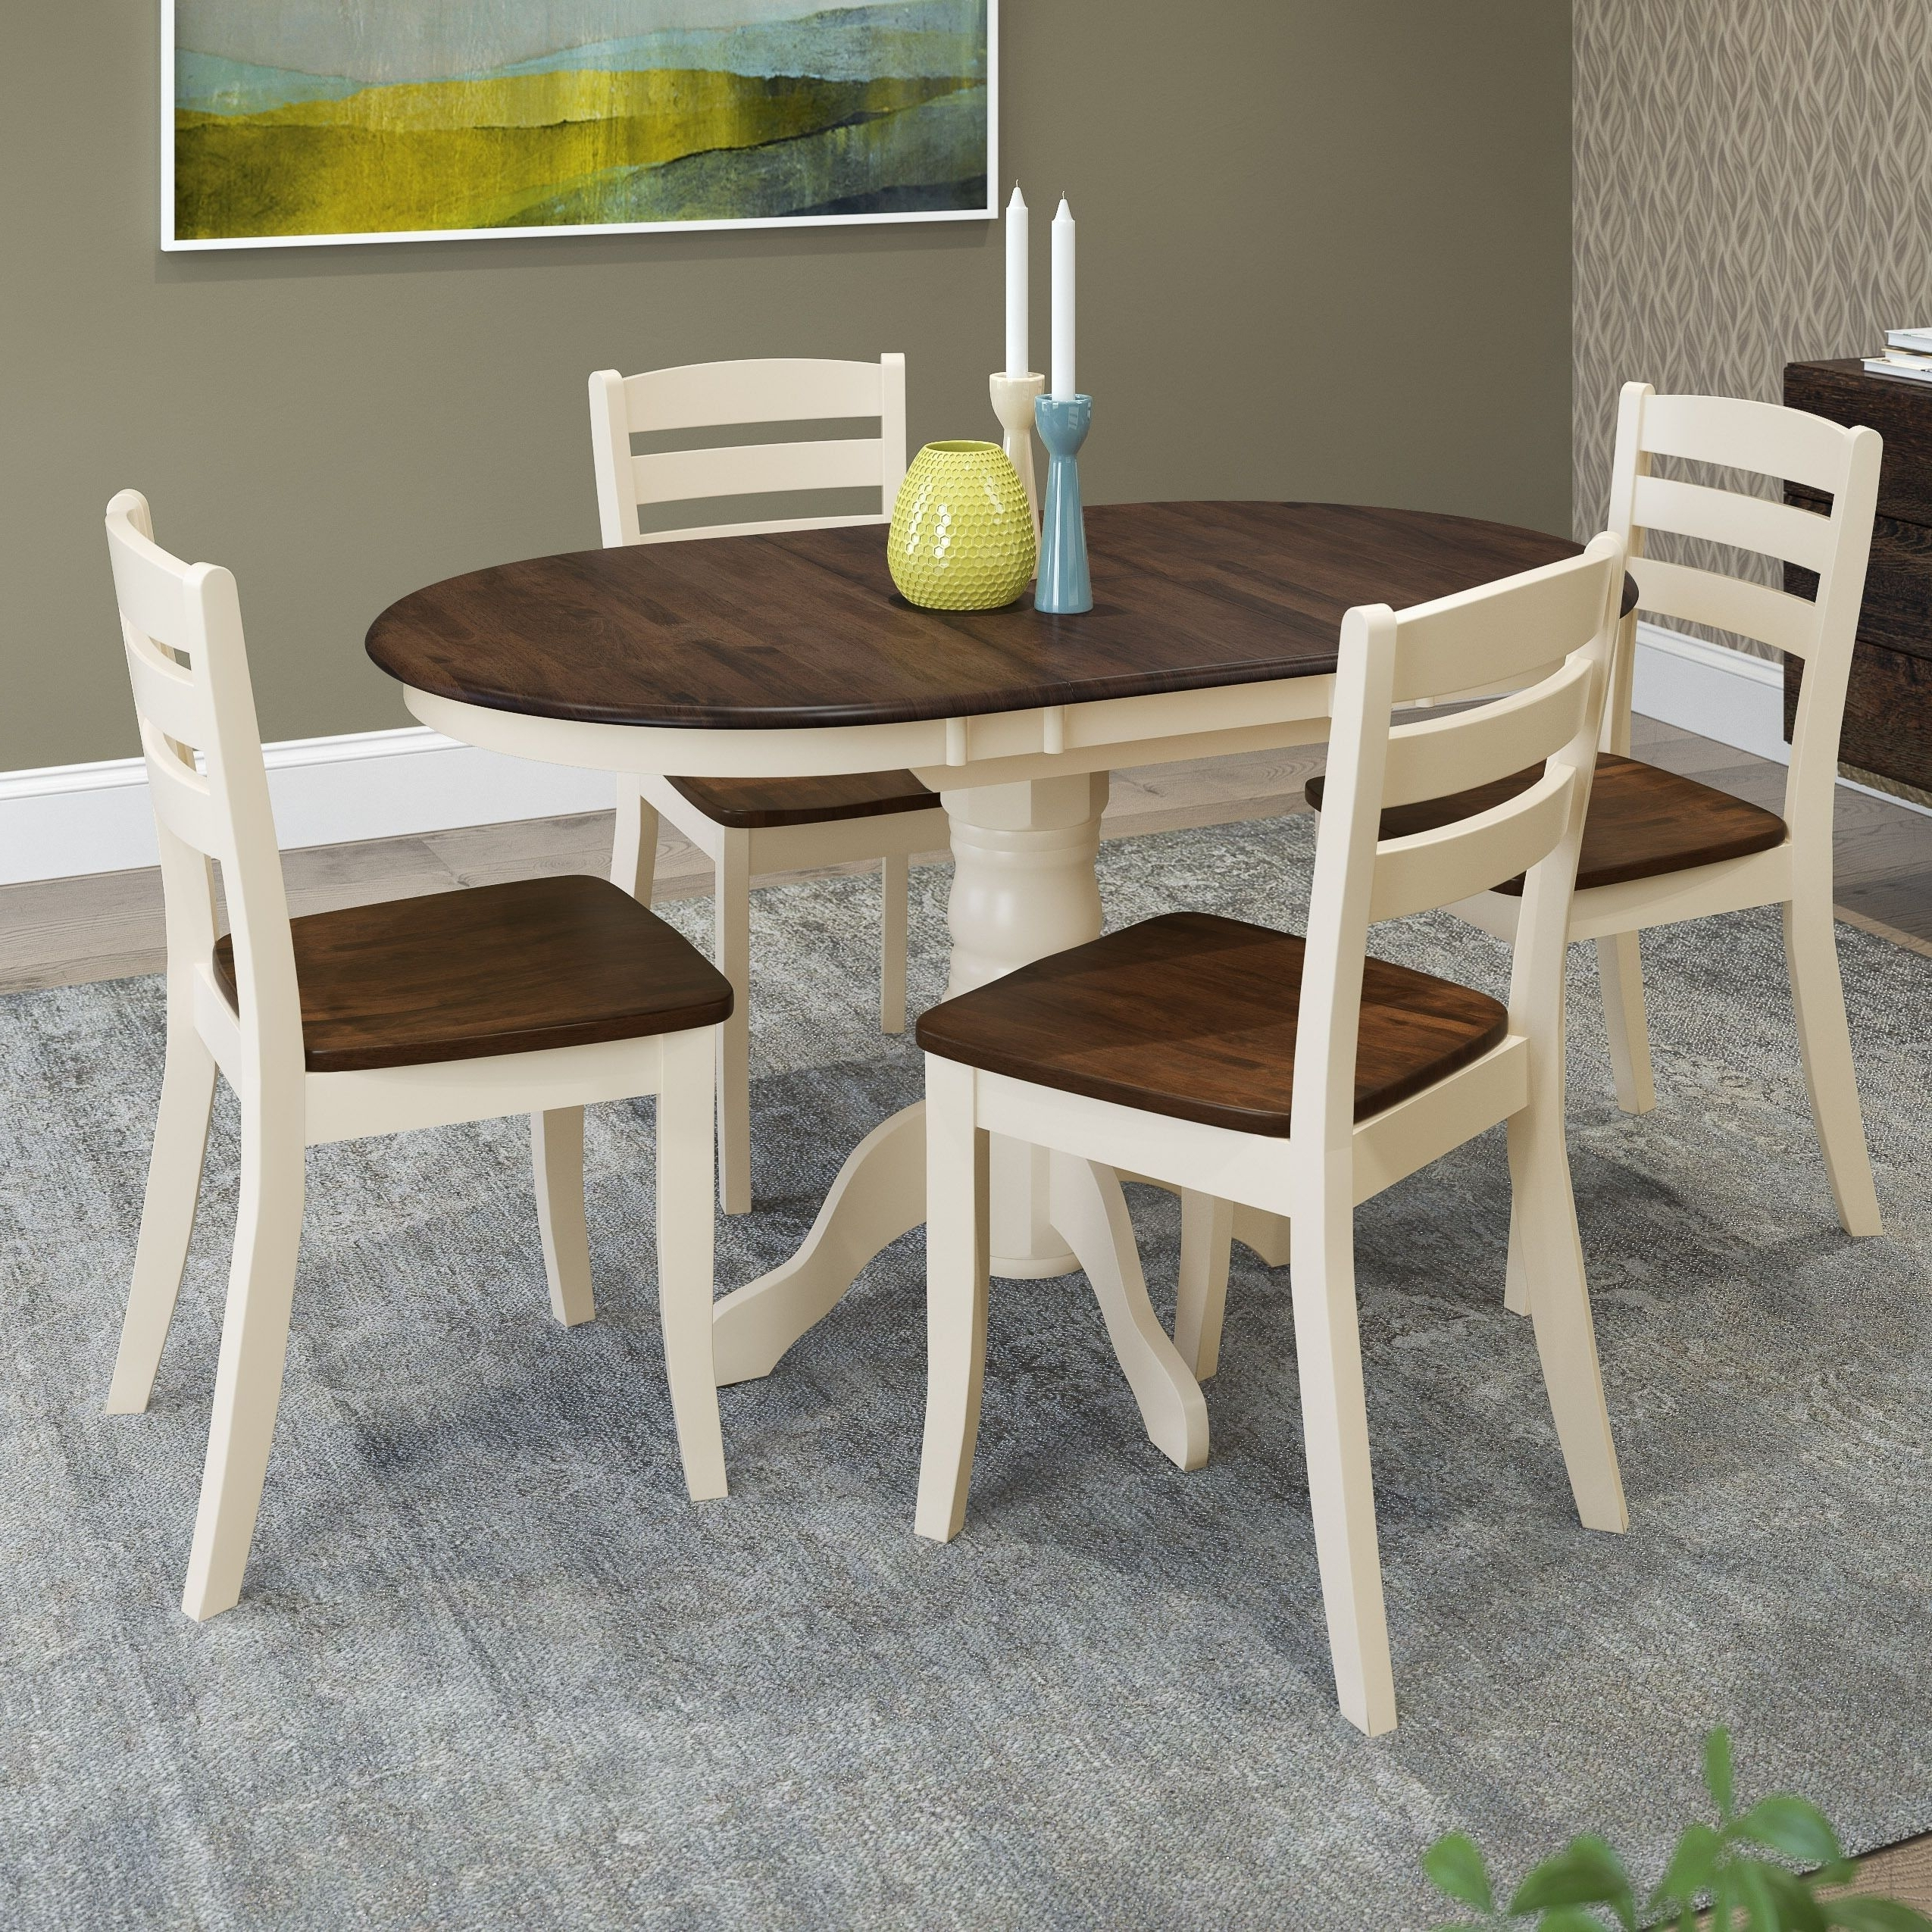 2018 Dark Solid Wood Dining Tables Intended For Corliving Dillon 5 Piece Extendable Dark Brown And Cream Solid Wood (View 2 of 25)